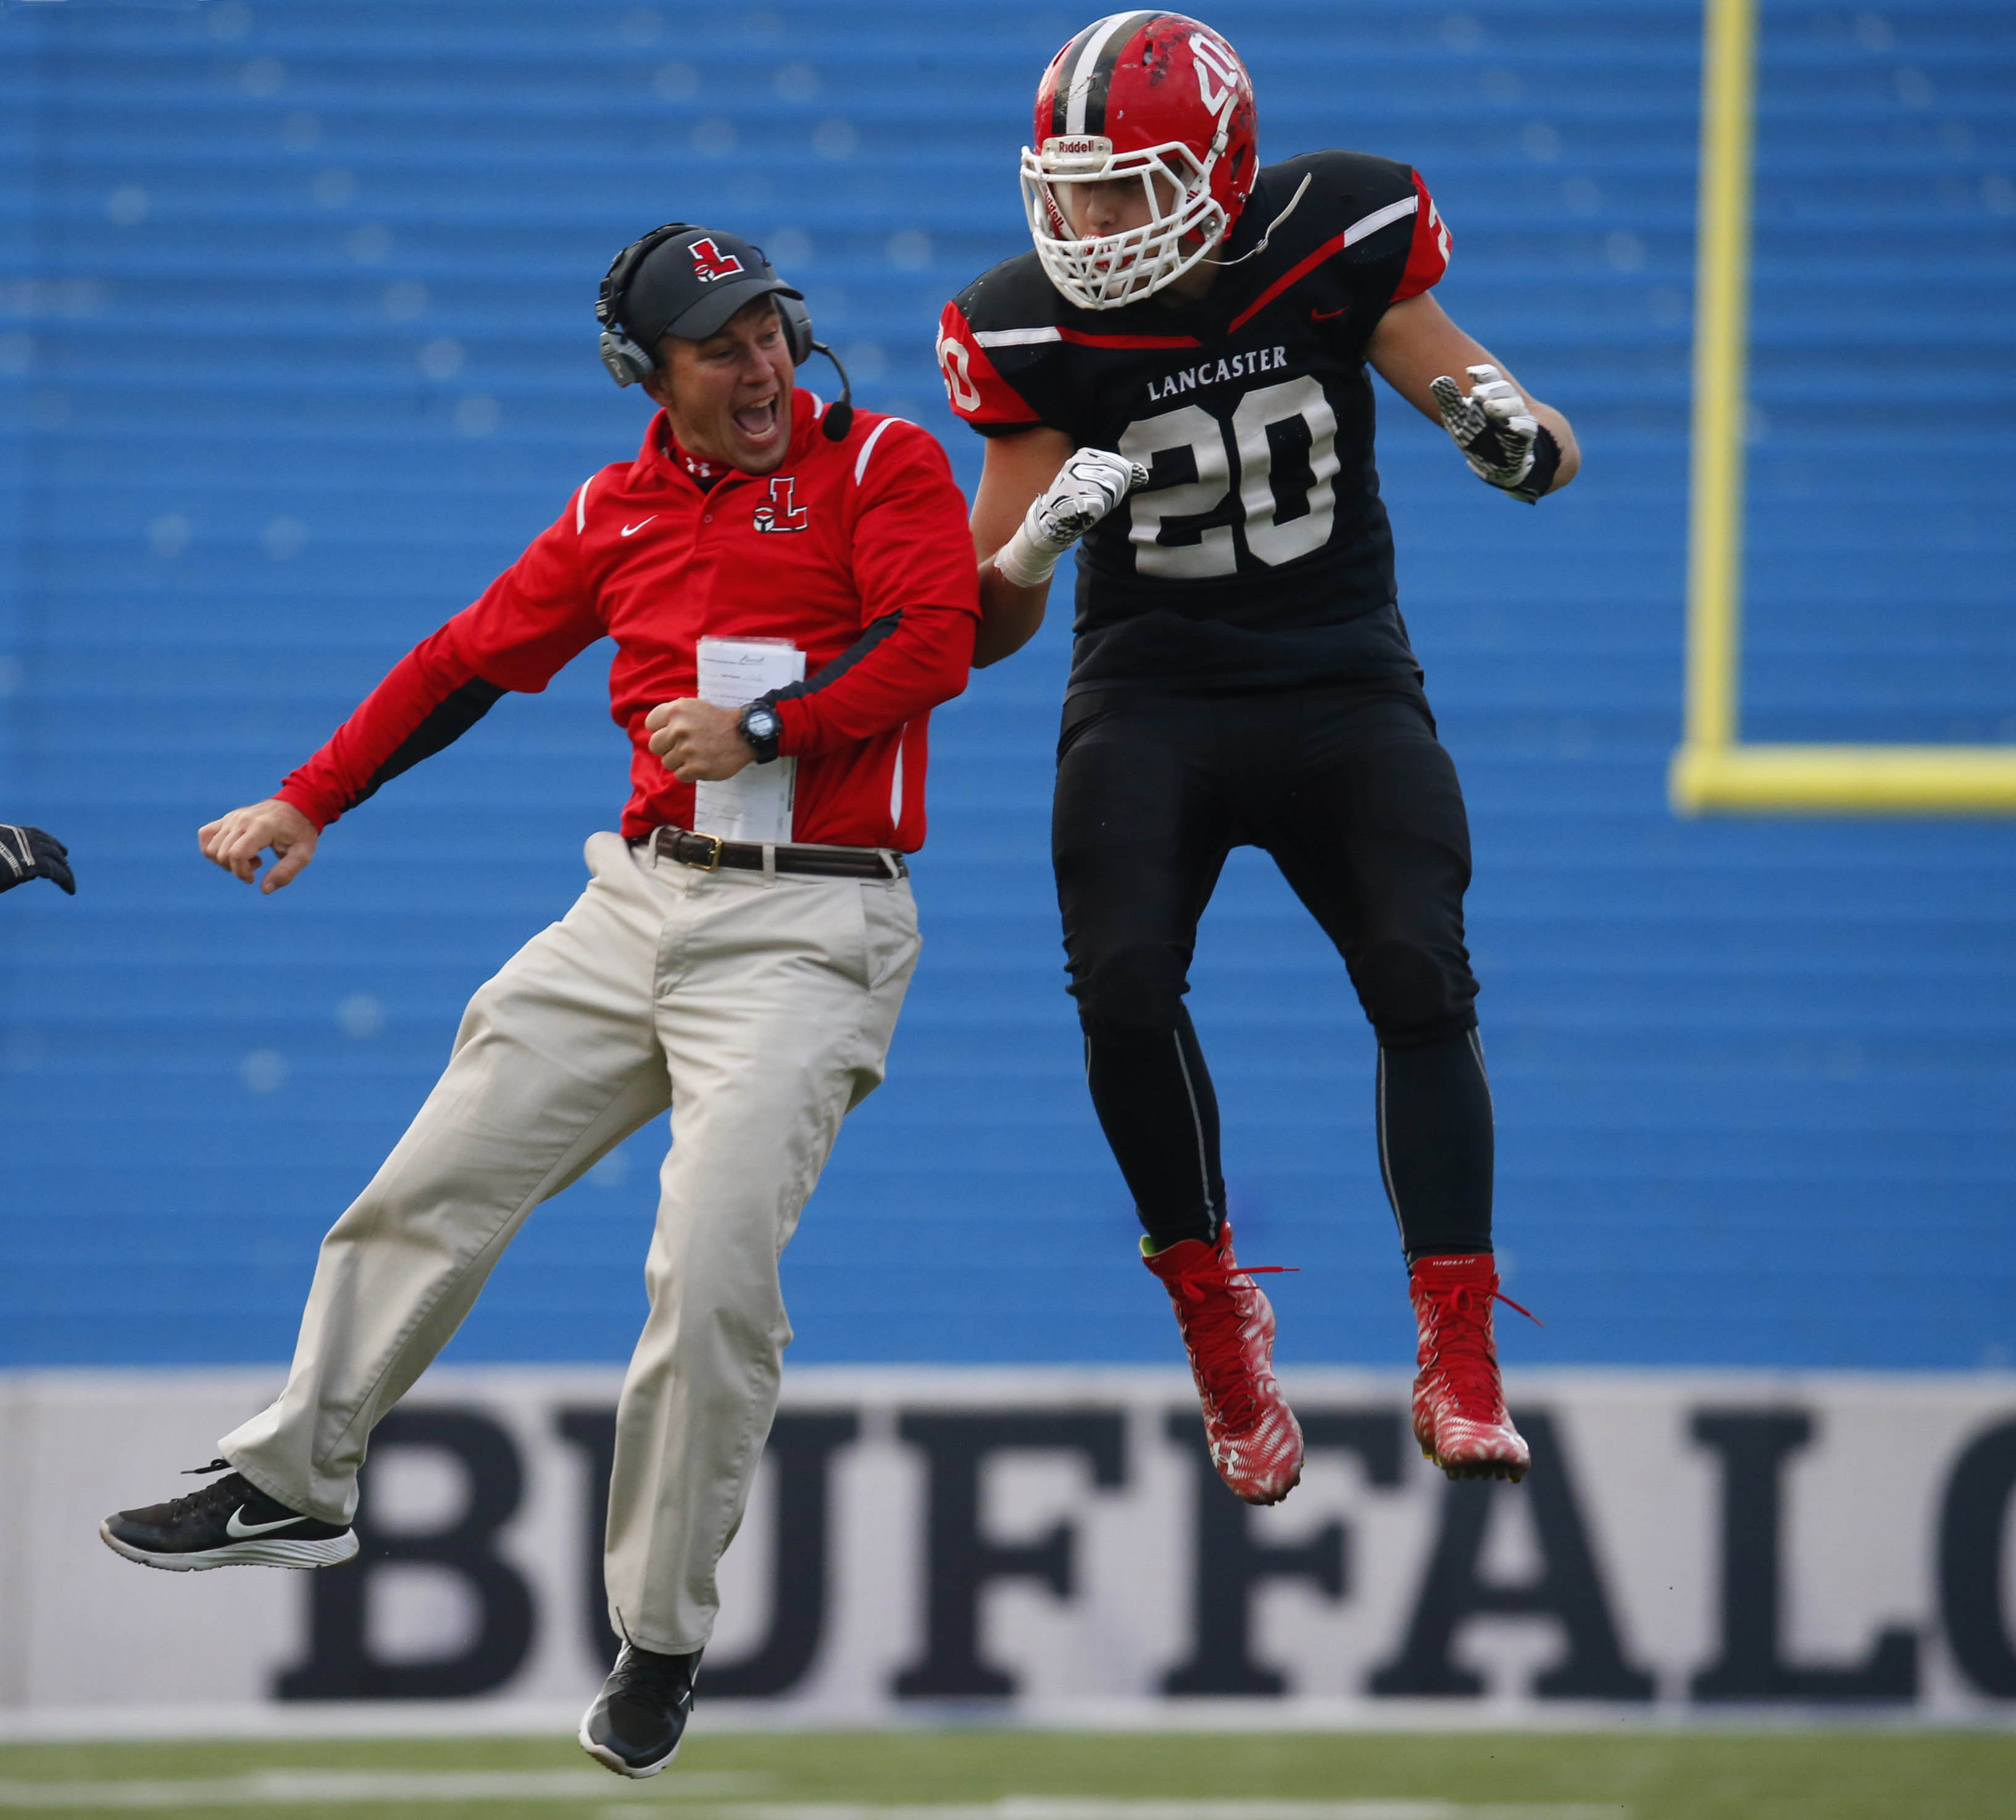 Lancaster assistant coach David Mansell celebrates with Ben Damiani after a defensive stop on Orchard Park during second half action of the Section VI Class AA Final at New Era Field on Saturday, Nov. 5, 2016. (Harry Scull Jr./Buffalo News)